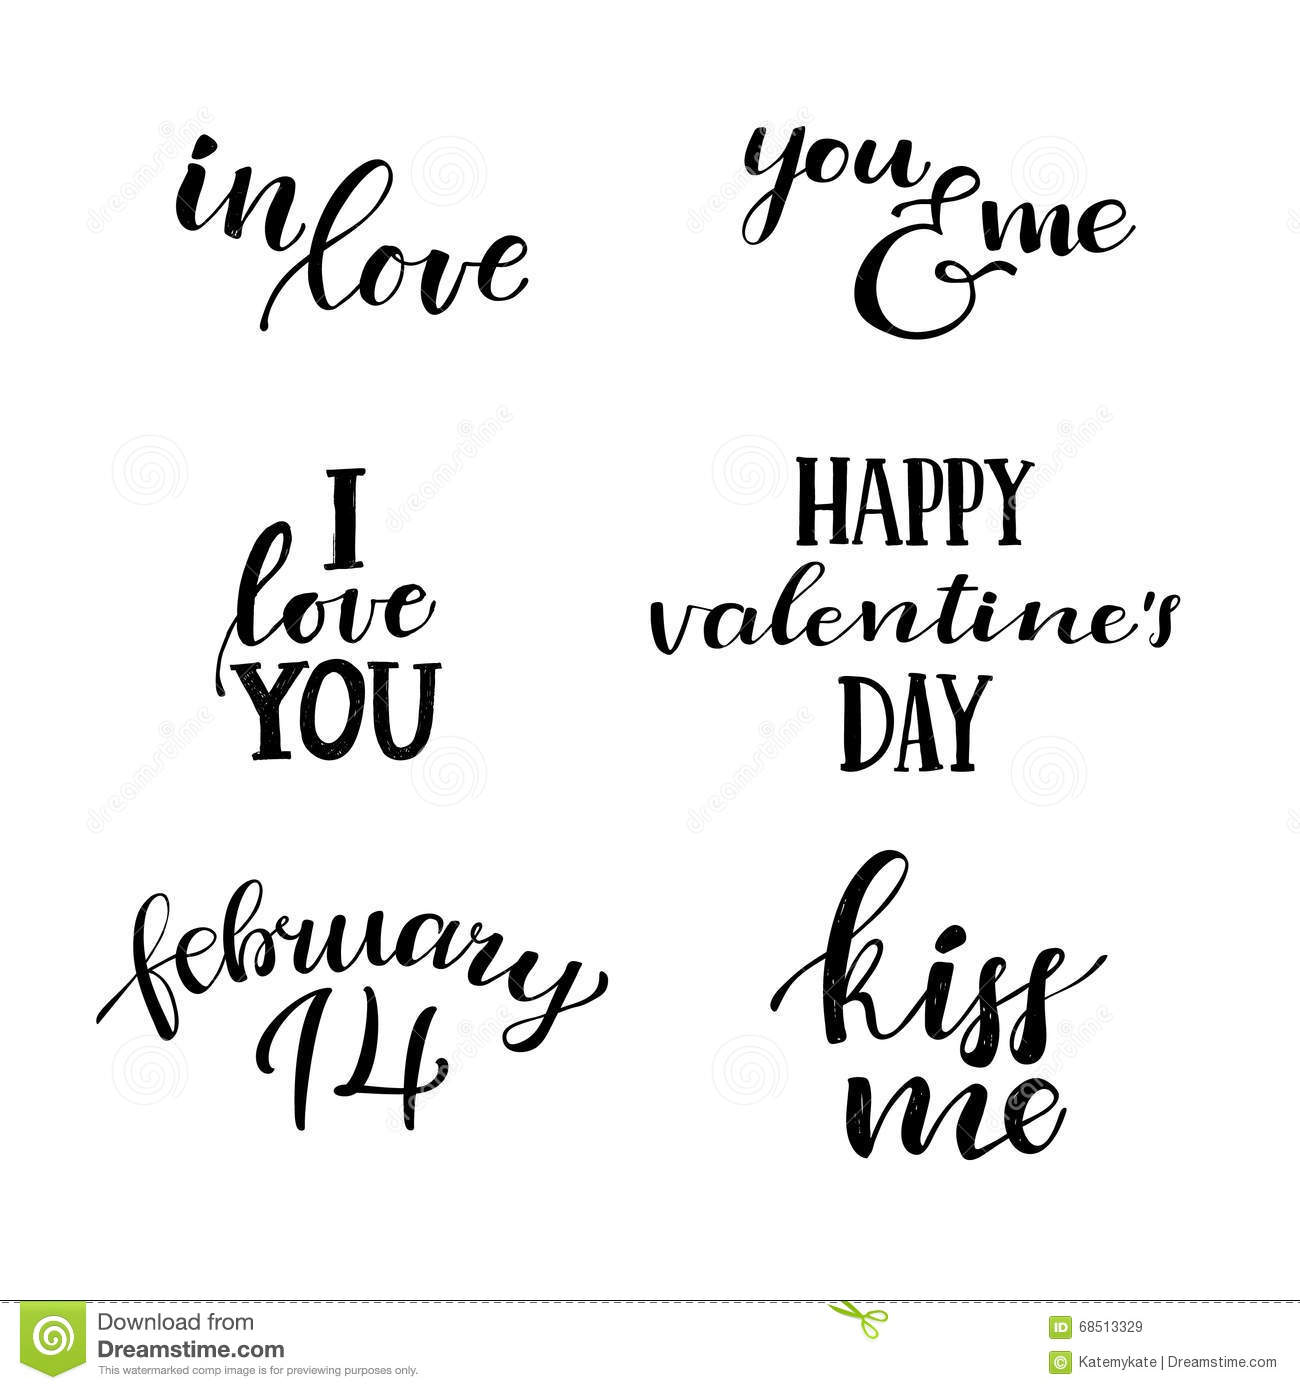 Quote On Love I Love Youhand Lettering Vintage Quotes About Lovestock Vector